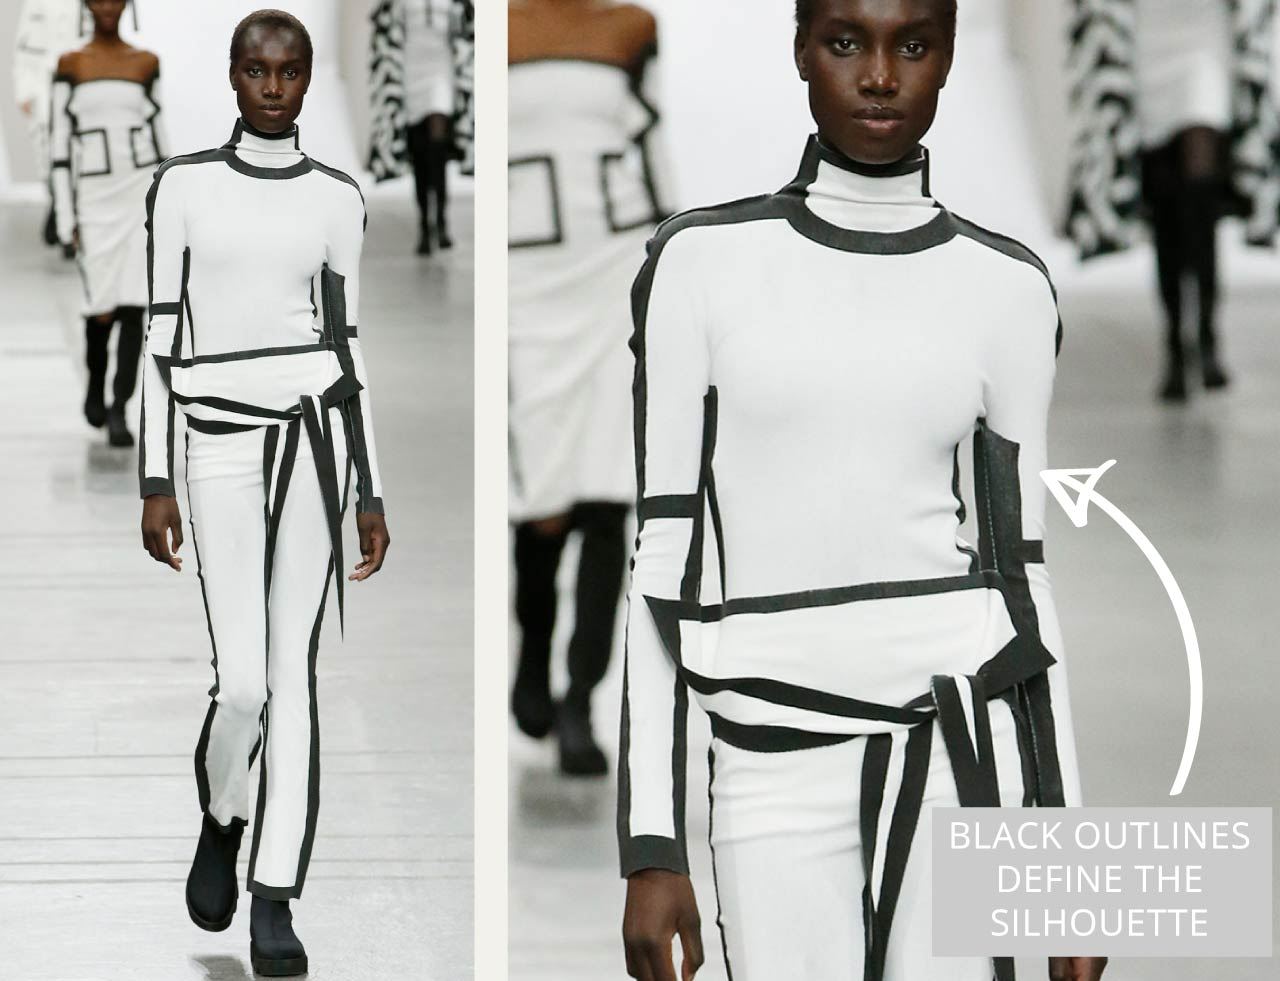 Connected Knits and Layering at Issey Miyake | The Cutting Class. Graphic outlines in monochrome pieces define the silhouette.